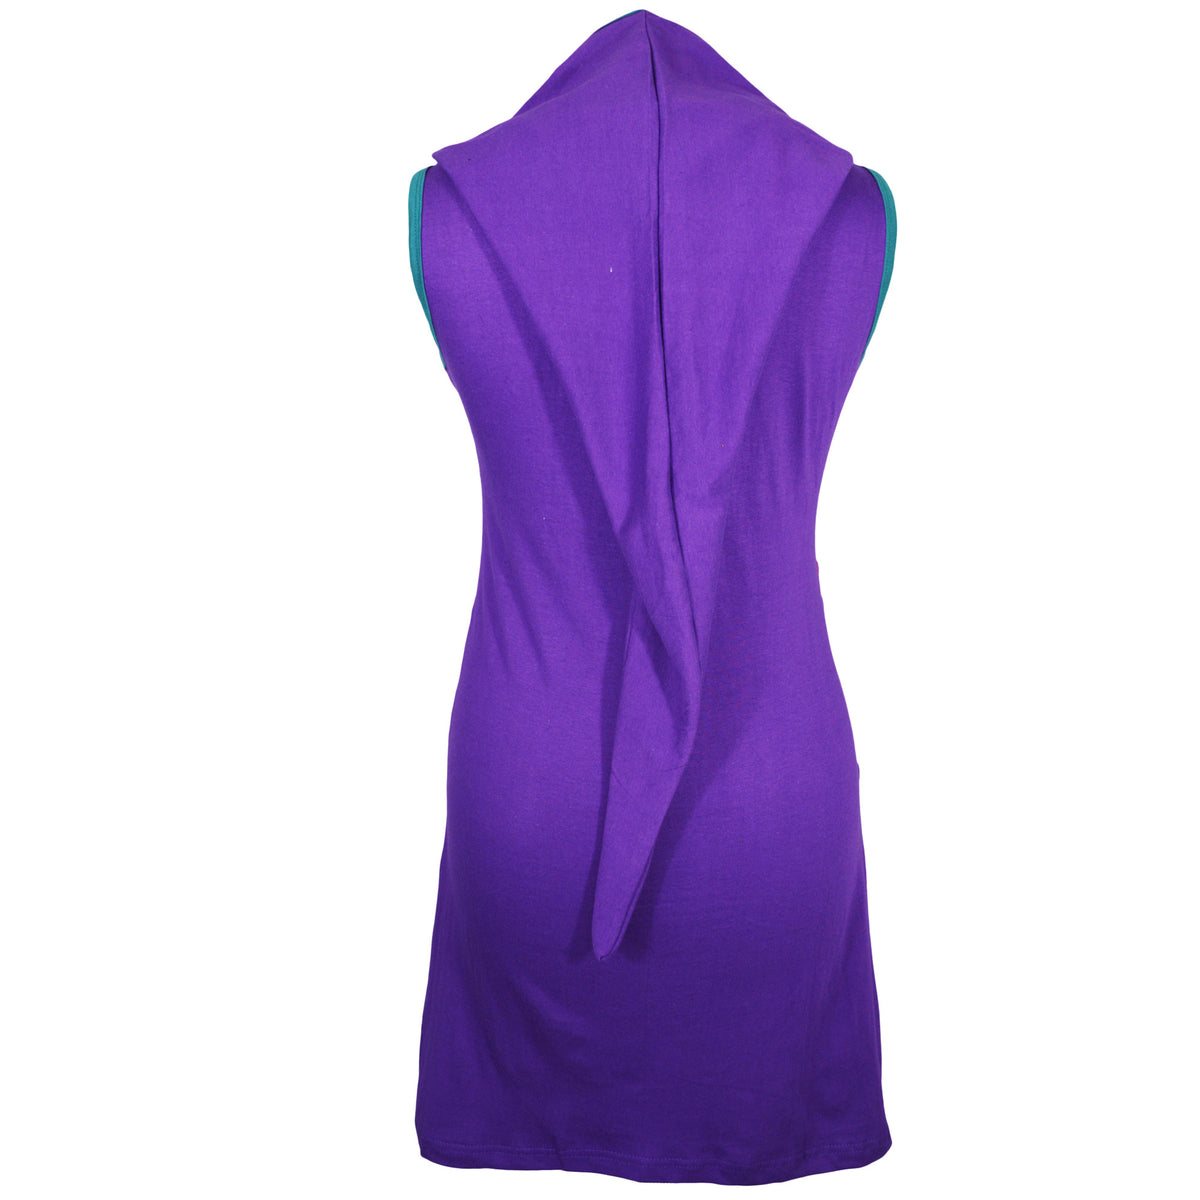 Women Sleeveless dress with hood and patch Design- NEW BINDU - Craze Trade Limited